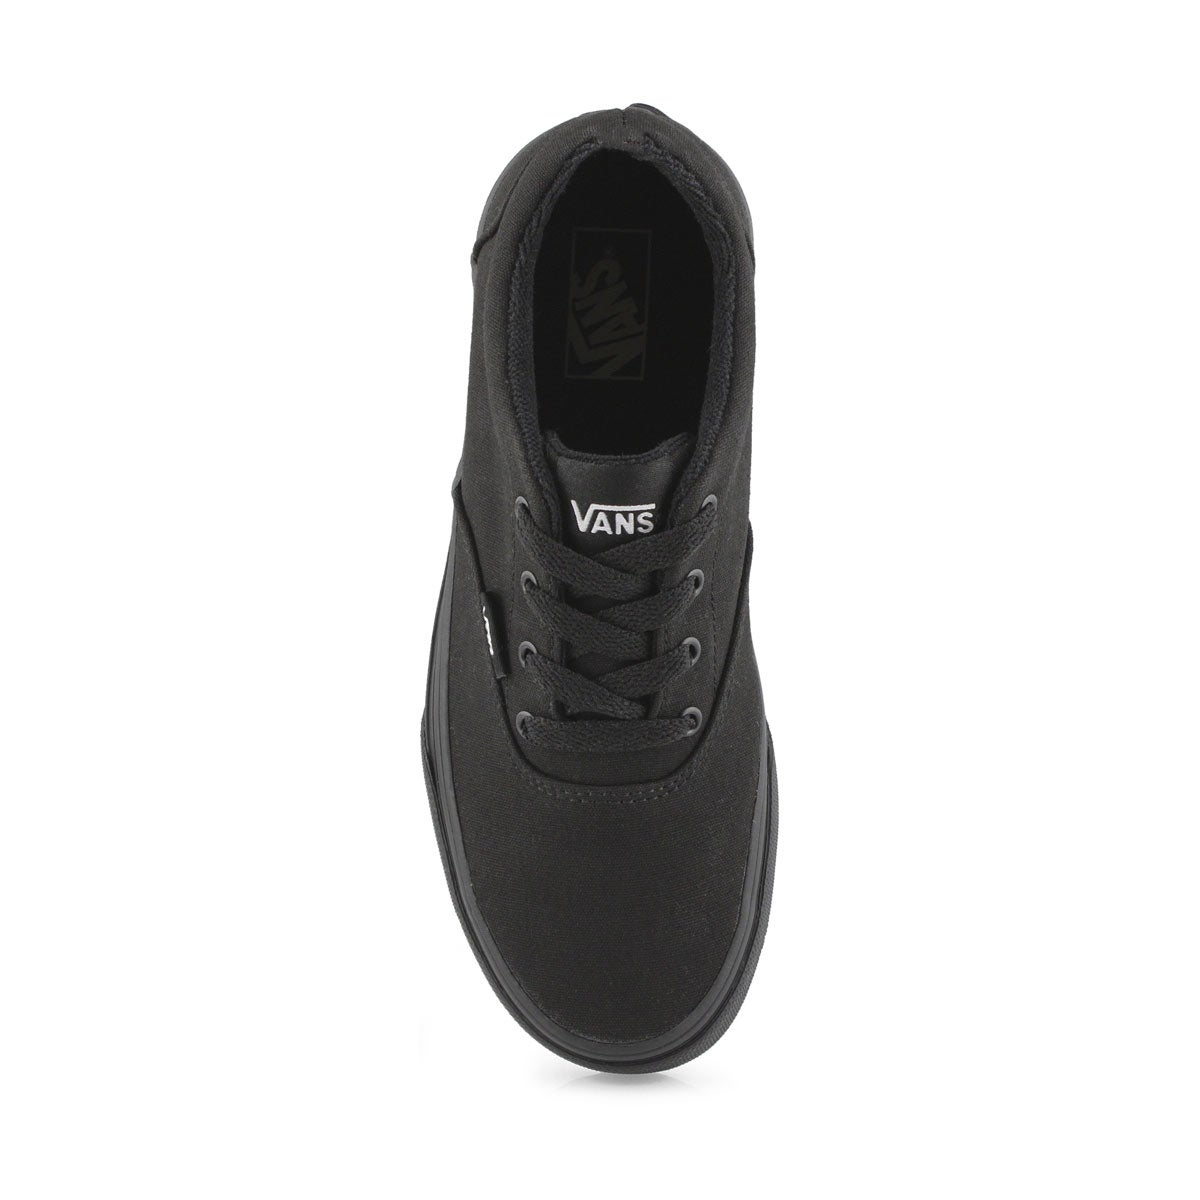 Kds Doheny blk/blk lace up sneaker